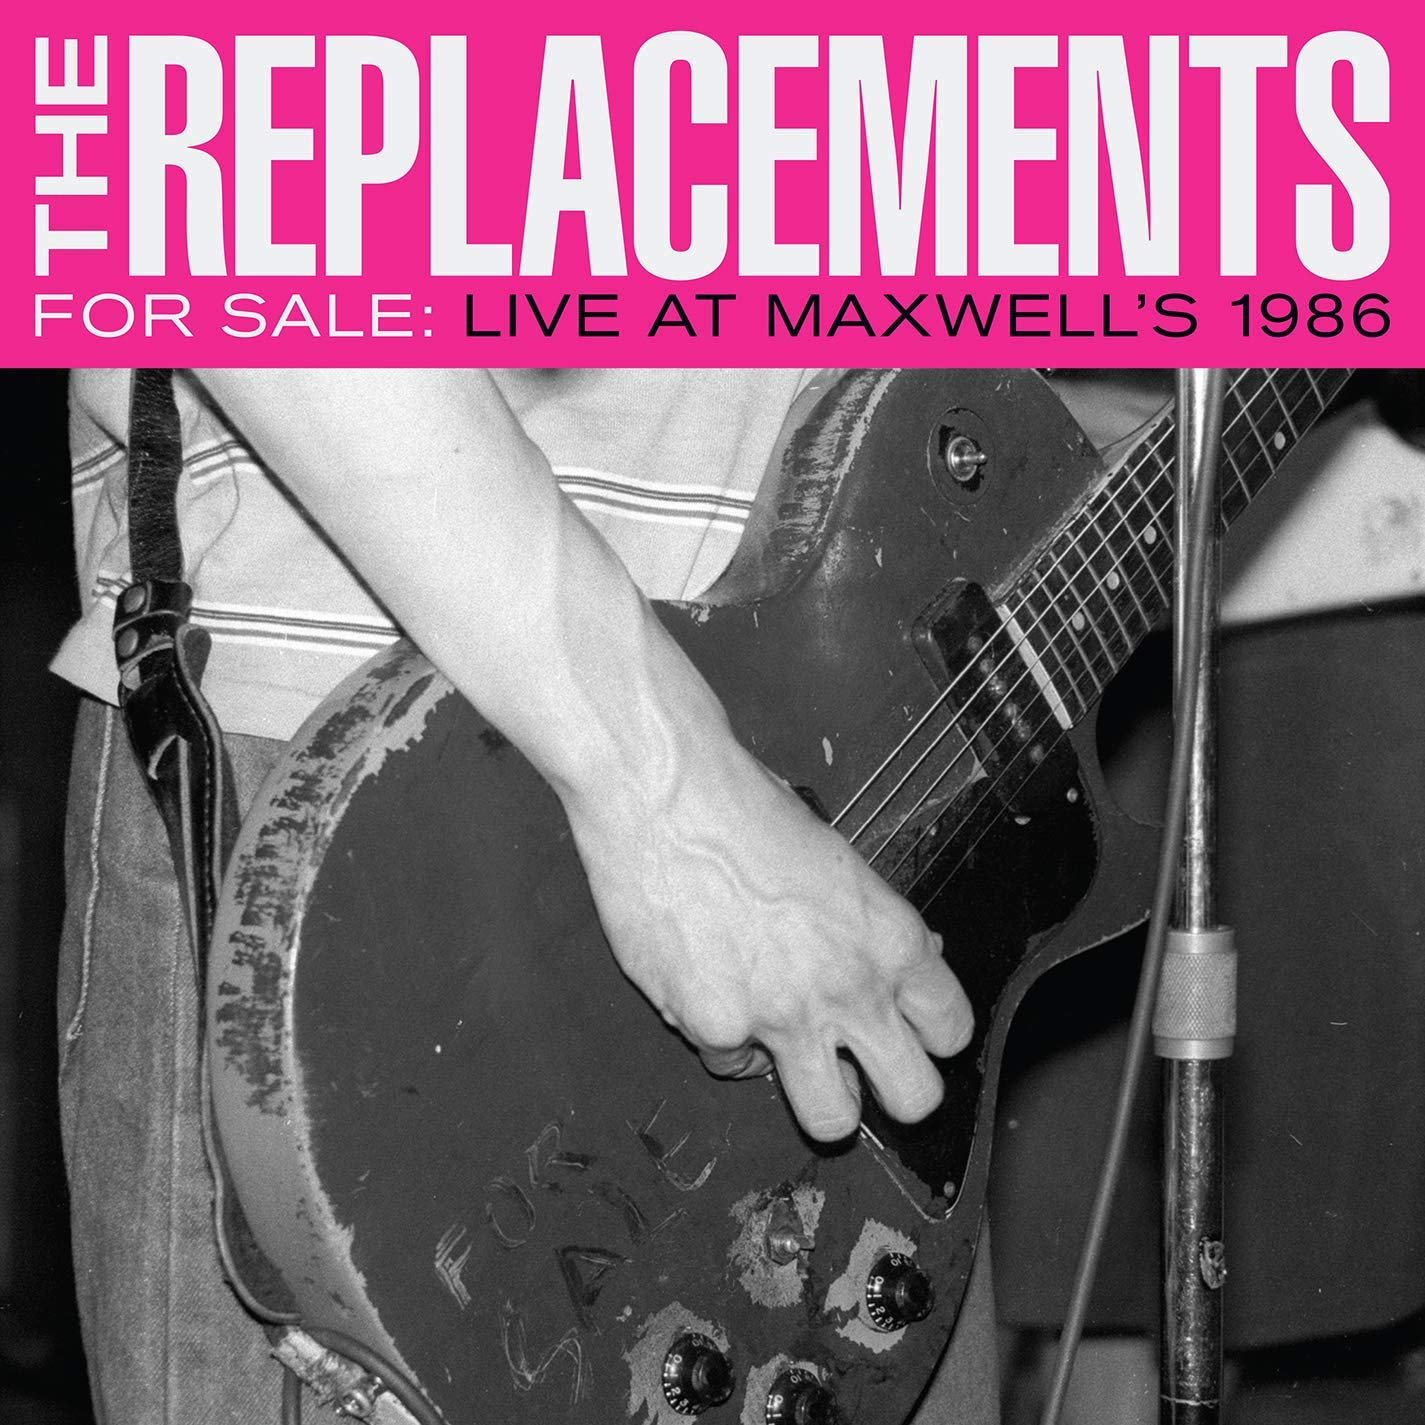 THE REPLACEMENTS - LIVE AT MAXWELL'S 1986 $31 first official live album @ 2017 Sire Records